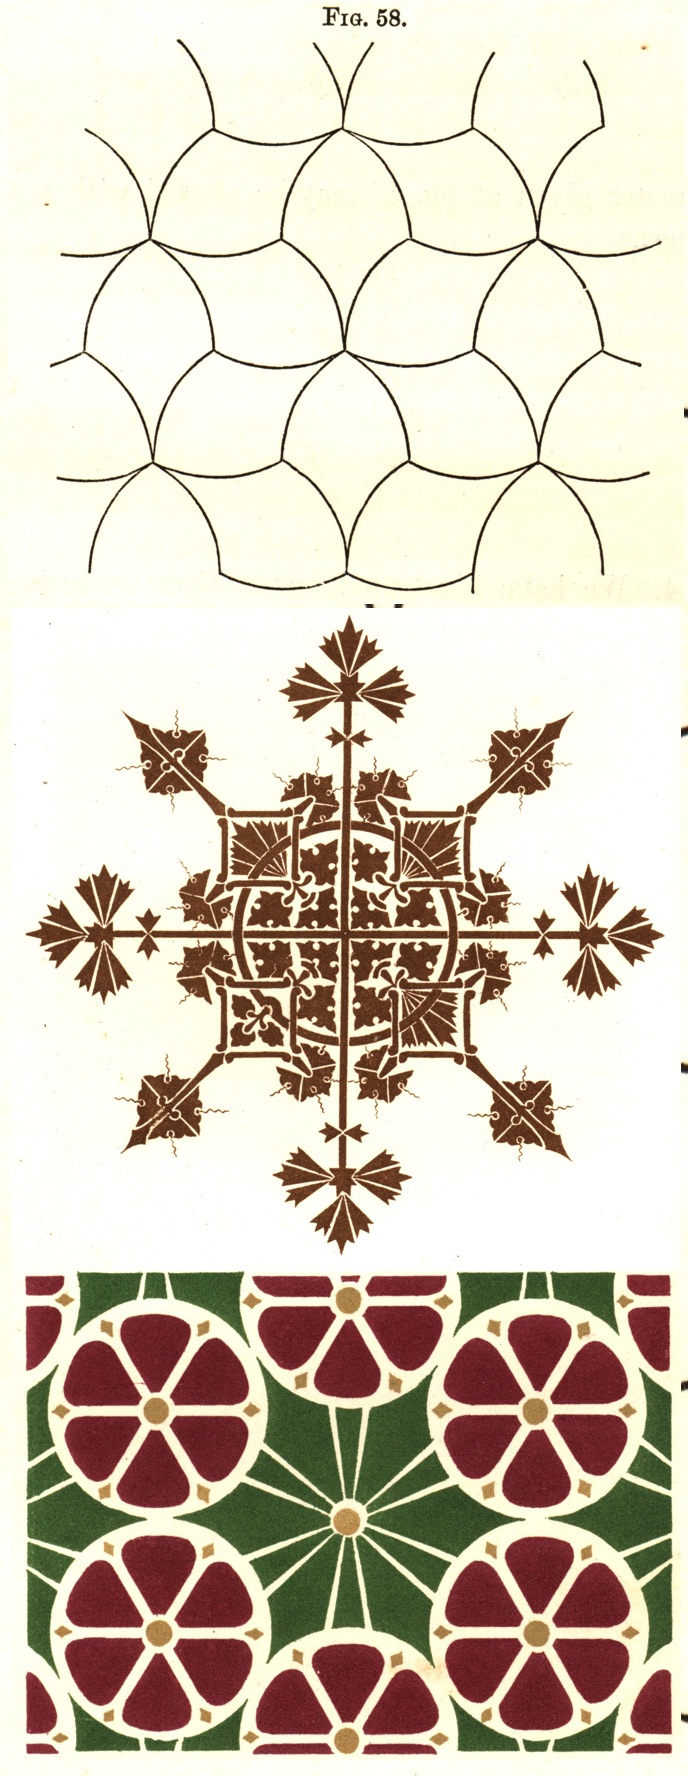 Figure 8. Dresser, ornamental patterns with radial symmetry, suitable for floors or ceilings. Fig. 57, Plate XVIII fig. 2, and Plate V fig. 3 from _The Art of Decorative Design_. Courtesy of the Department of Special Collections, Stanford University Libraries.